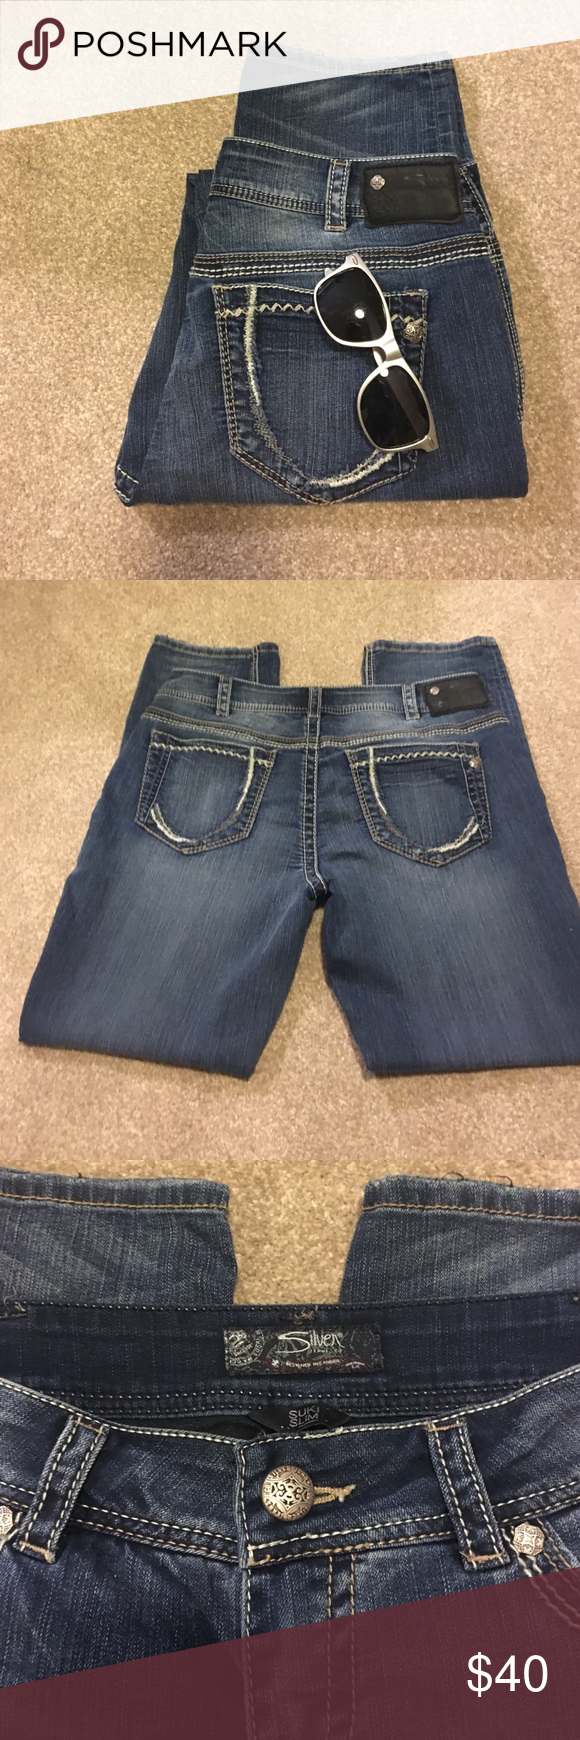 "Silver jeans (Suki Slim) size 32/L29 straight leg Kinda dark wash with fading. Suki slim L9216ssf272.. Great detail on back pockets .. No rips or stains. Gently used condition.. Measures:: 15 1/2"" waist 9"" rise 20 1/2"" hips laid flat .. SFH really nice or to tuck in boots or wear with flats. Silver Jeans Jeans Straight Leg"